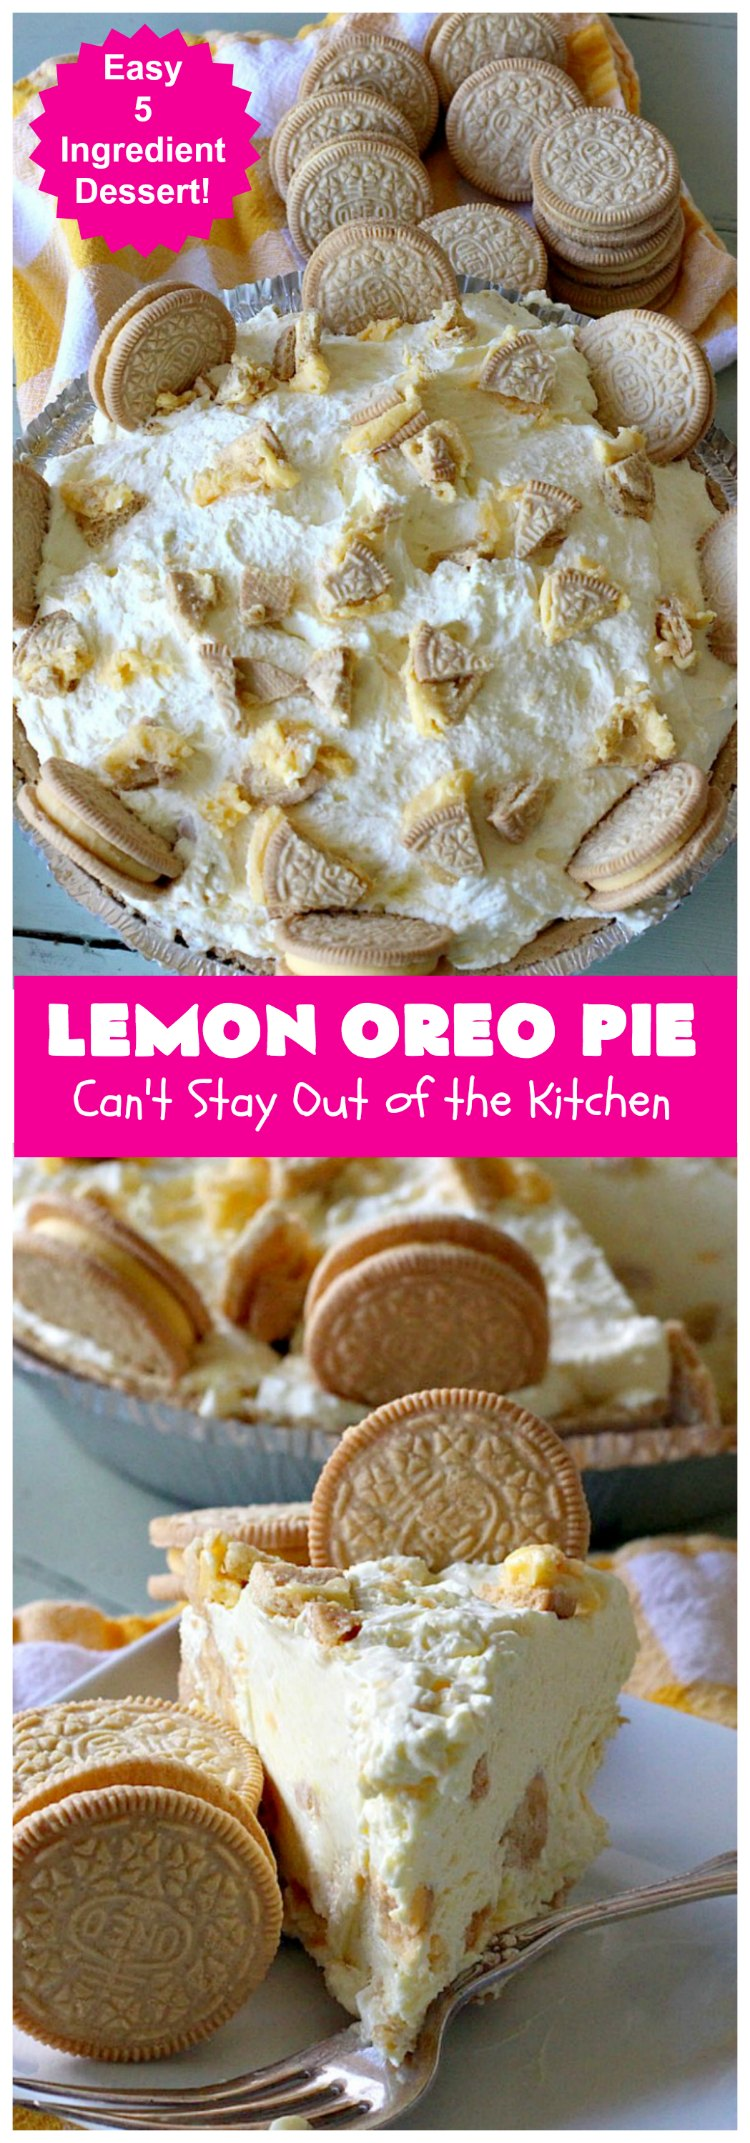 Lemon Oreo Pie   Can't Stay Out of the Kitchen